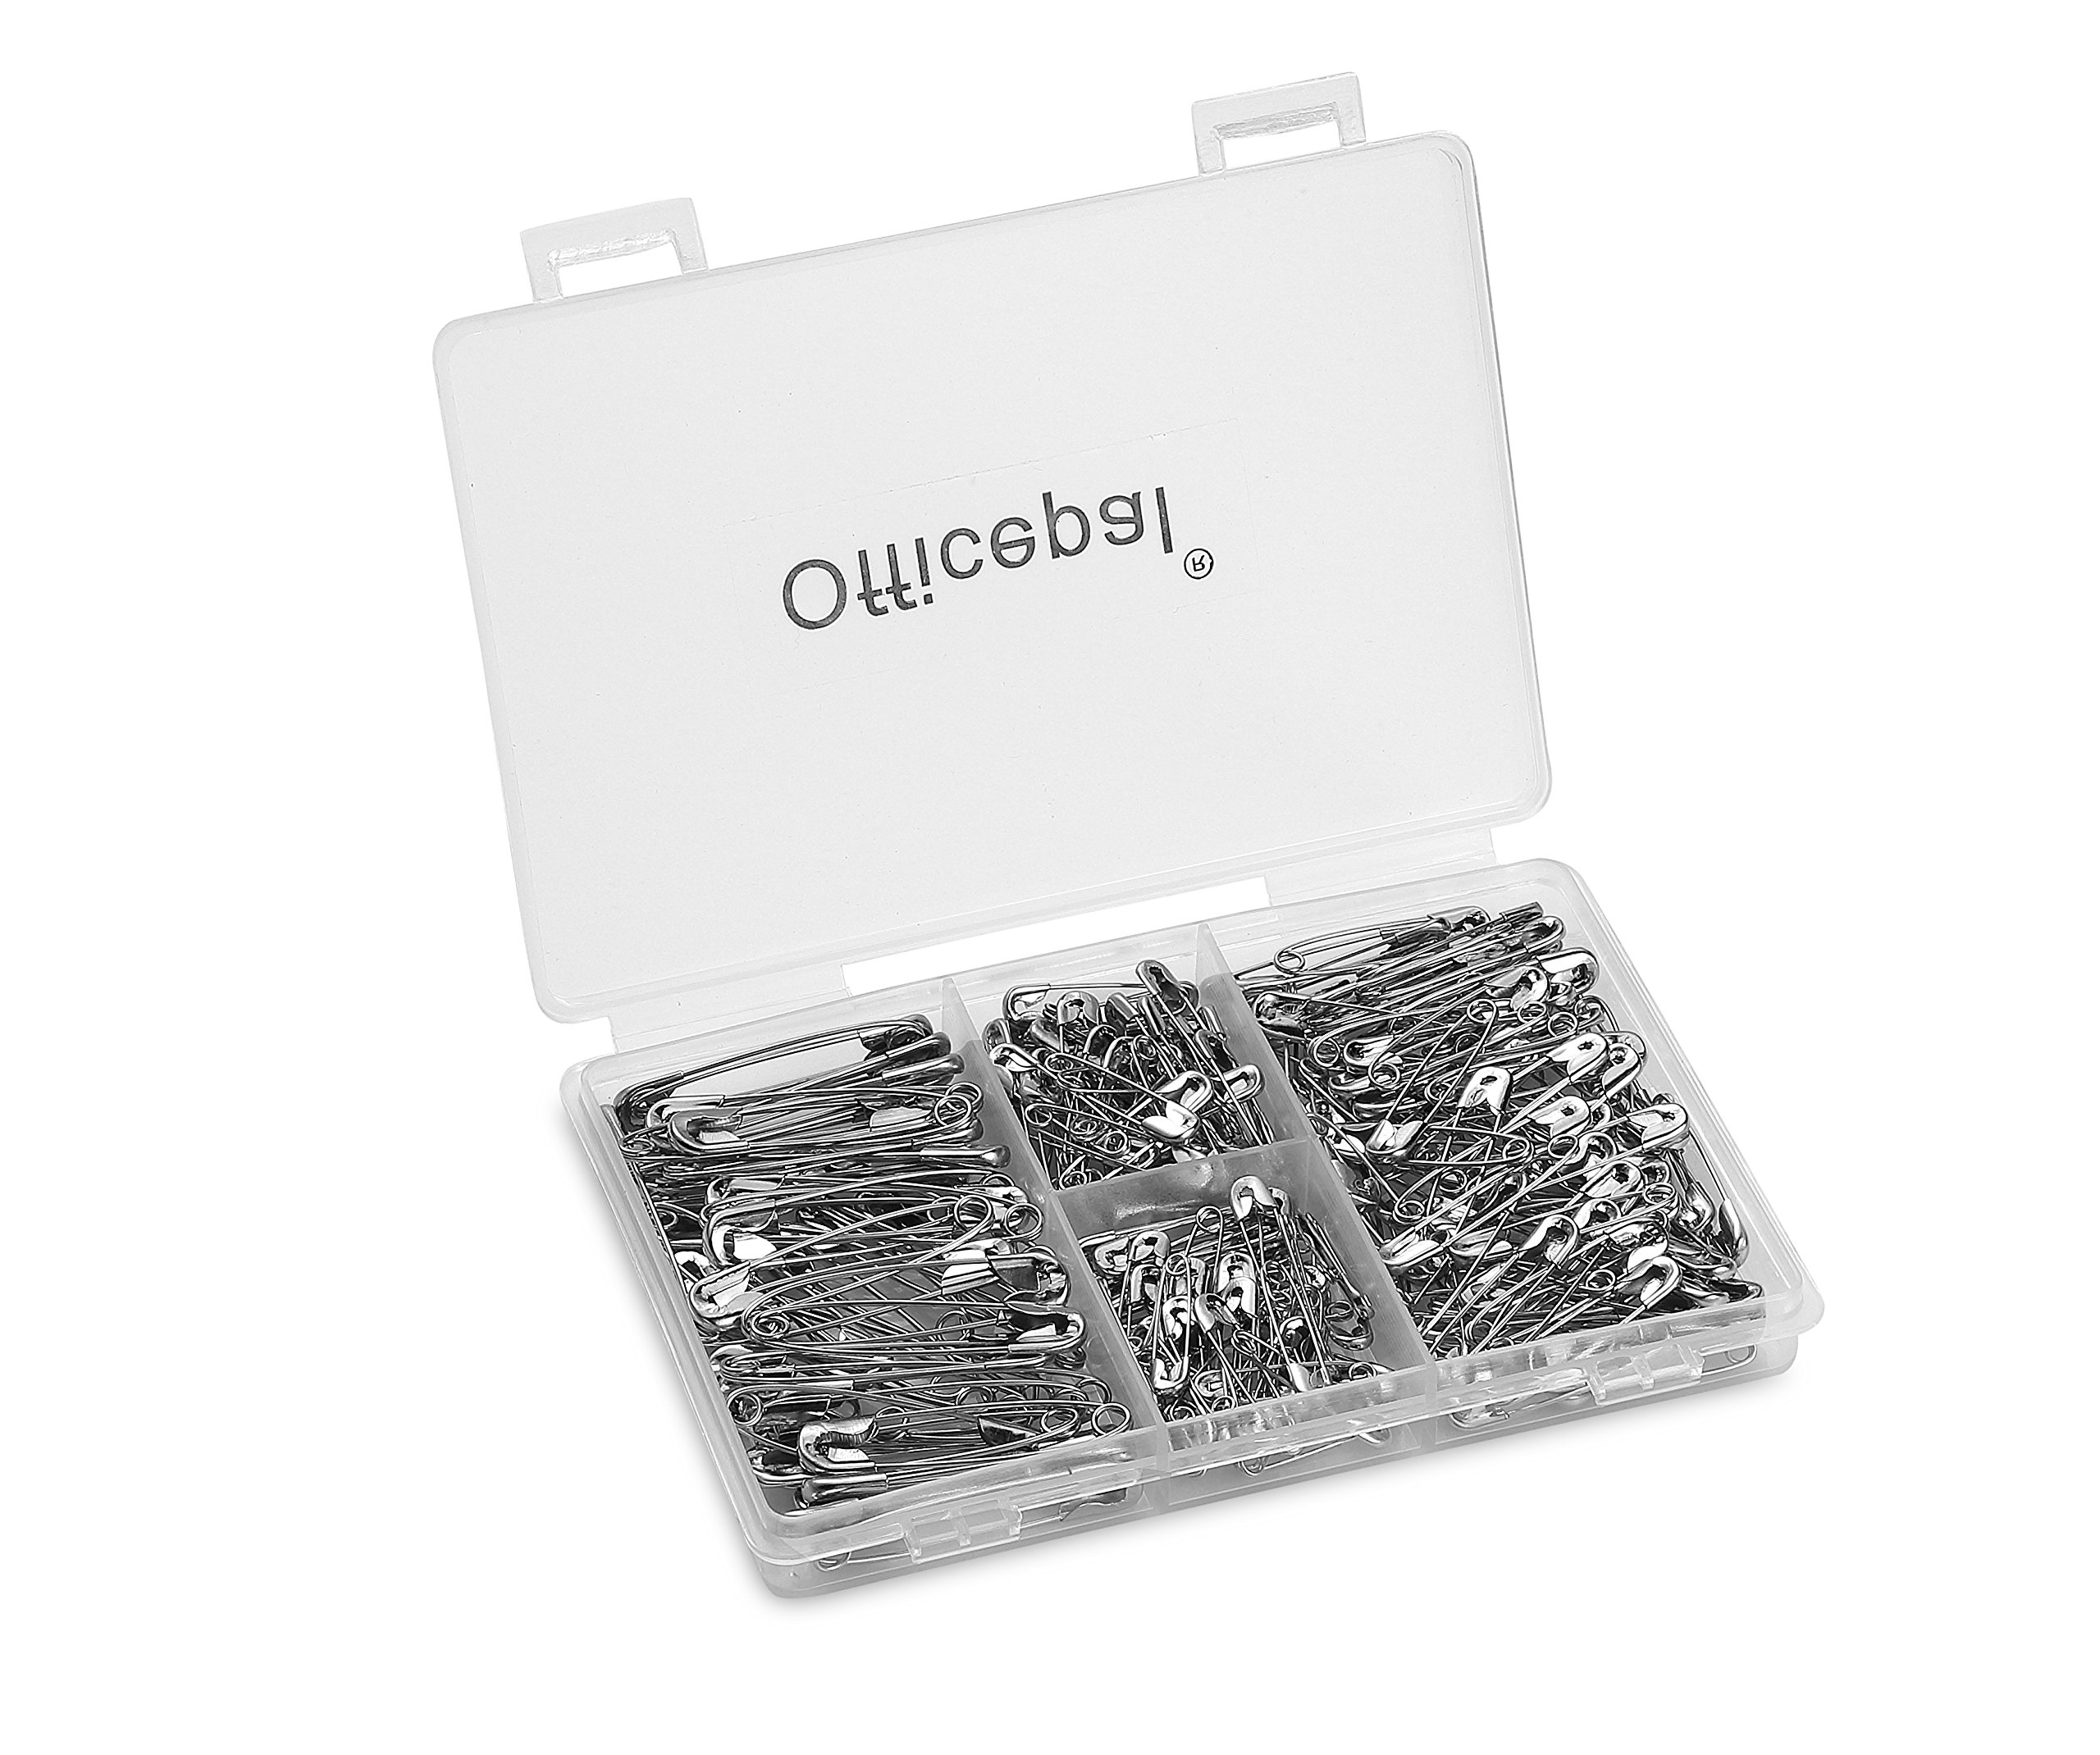 Officepal Premium Quality 4-Size Pack Of Safety Pins- Top 250-Count – Durable, Rust-Resistant Nickel Plated Steel Set- Best Sewing Accessories Kit For Baby Clothing, Crafts & Arts (More Large Pins)